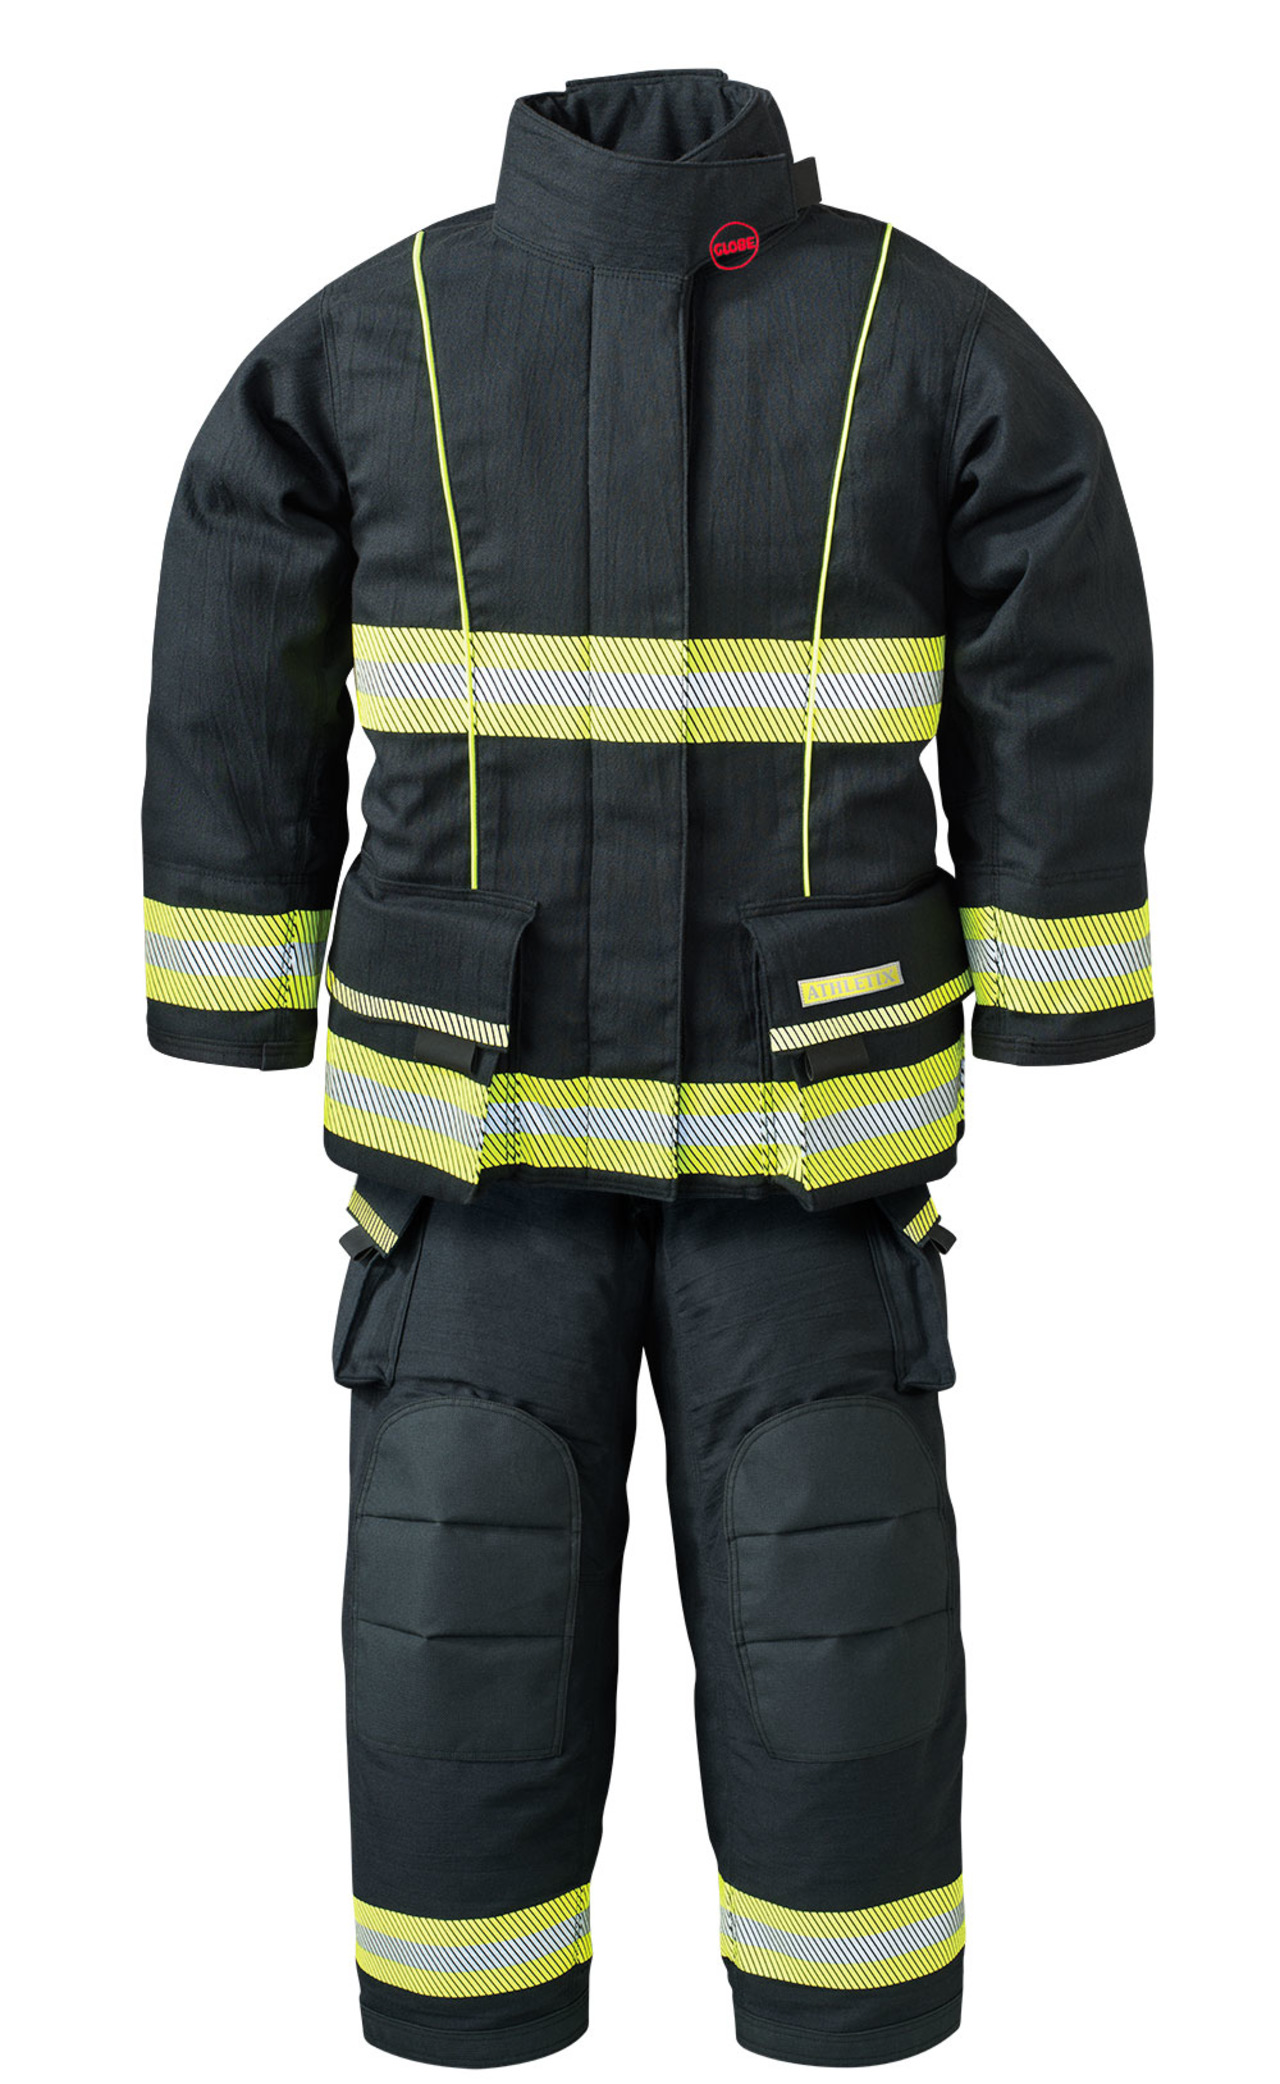 63434aeeb836 Firefighter Turnout Gear - Globe Manufacturing Globe Makes ...